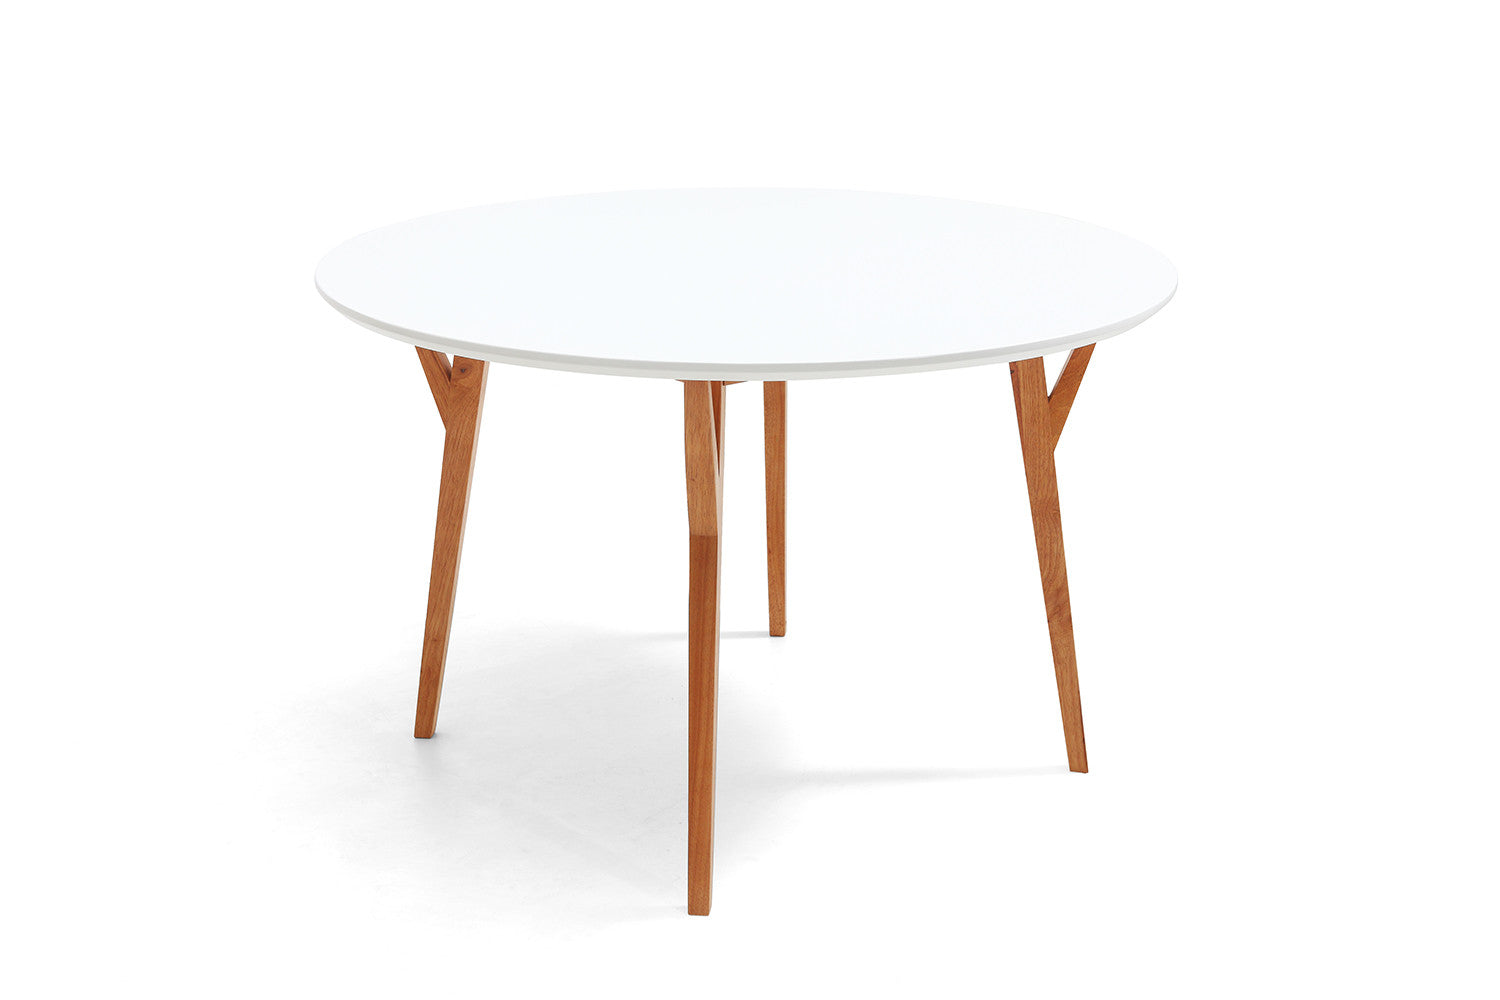 Table de salle manger ronde design scandinave moesa for Table design salle a manger